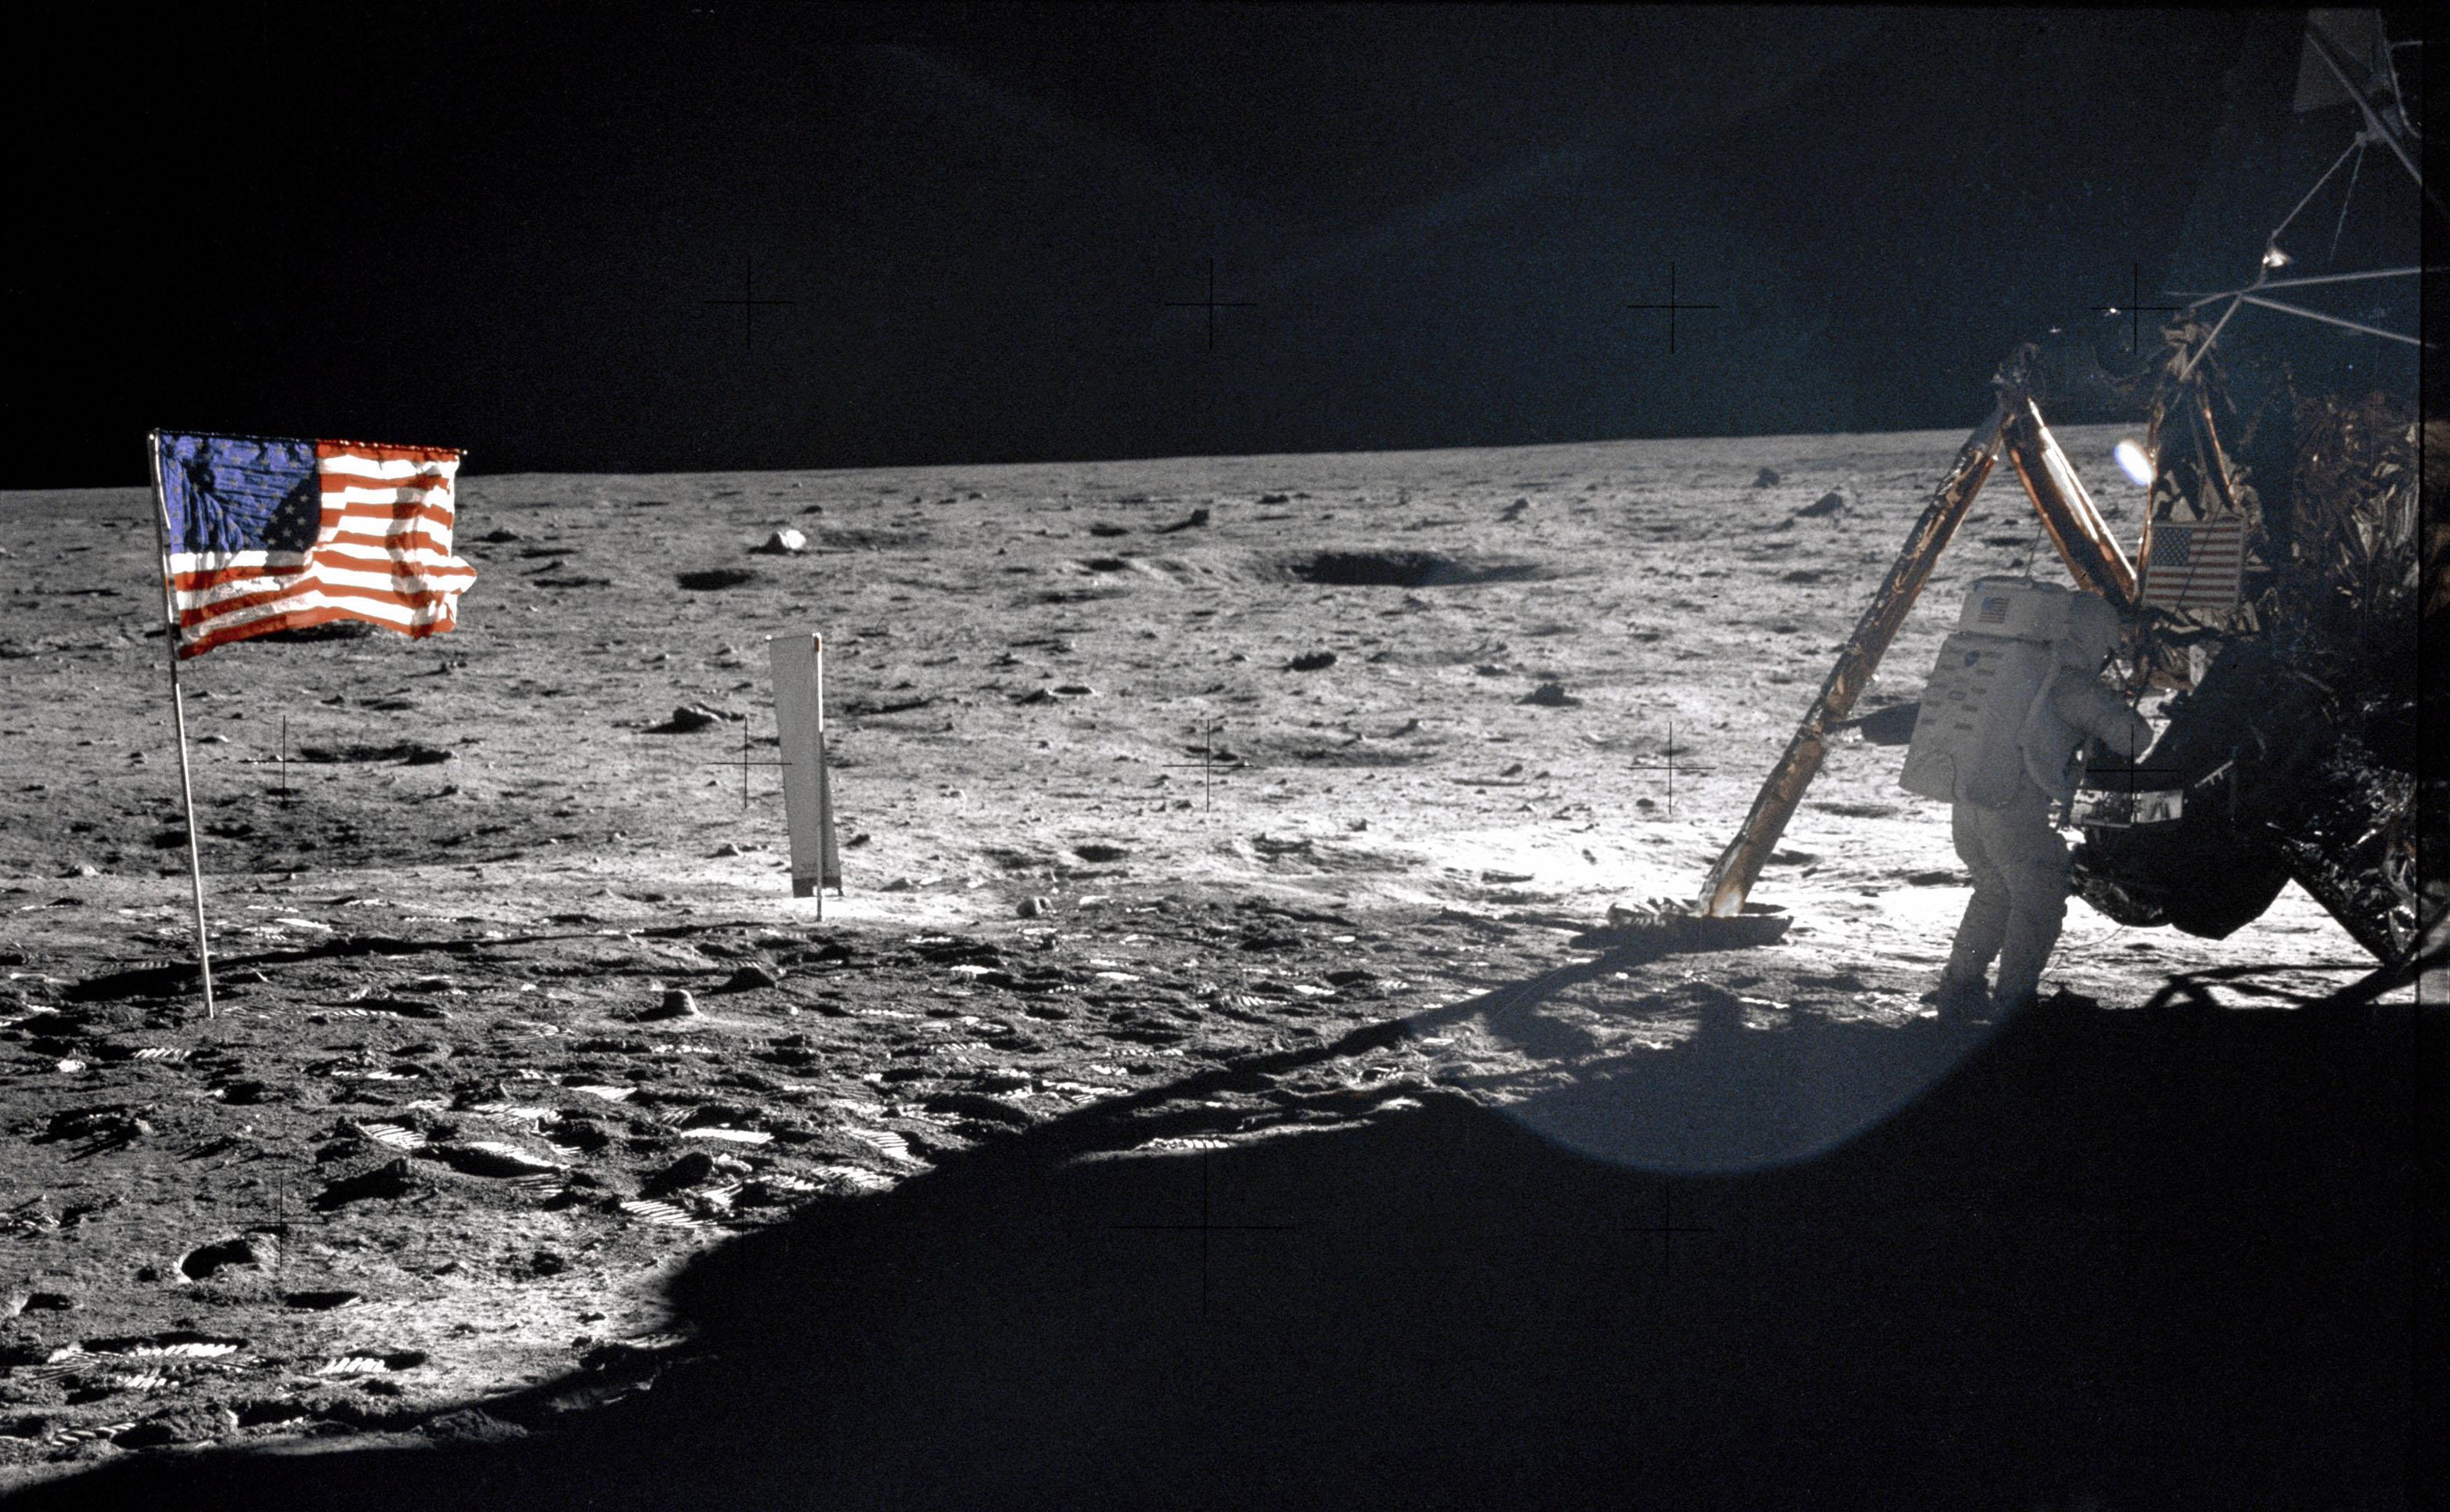 Apollo 11 astronauts trained on Earth to take individual photographs in succession in order to create a series of frames that could be assembled into panoramic images. This frame from Aldrin's panorama of the Apollo 11 landing site is the only good picture of mission commander Neil Armstrong on the lunar surface.